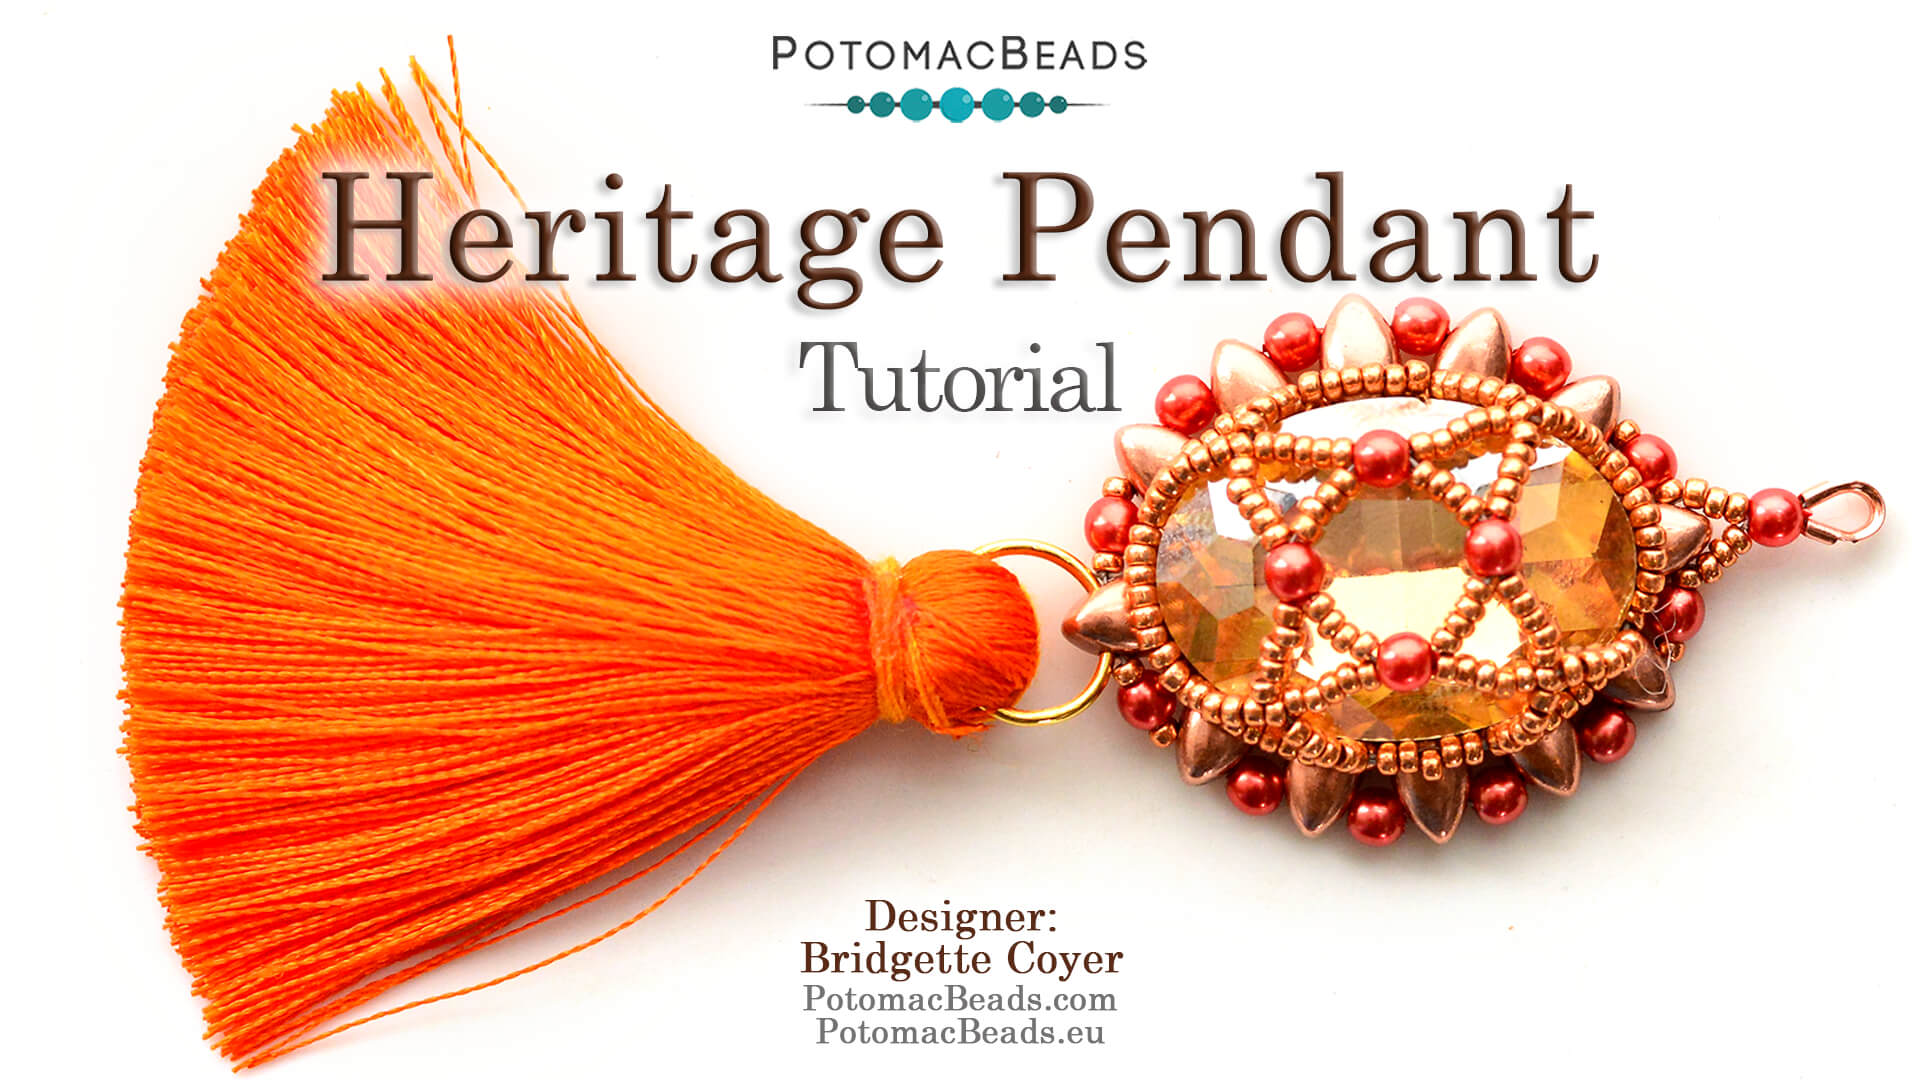 How to Bead / Videos Sorted by Beads / Pearl Videos (Czech & Freshwater) / Heritage Pendant Tutorial